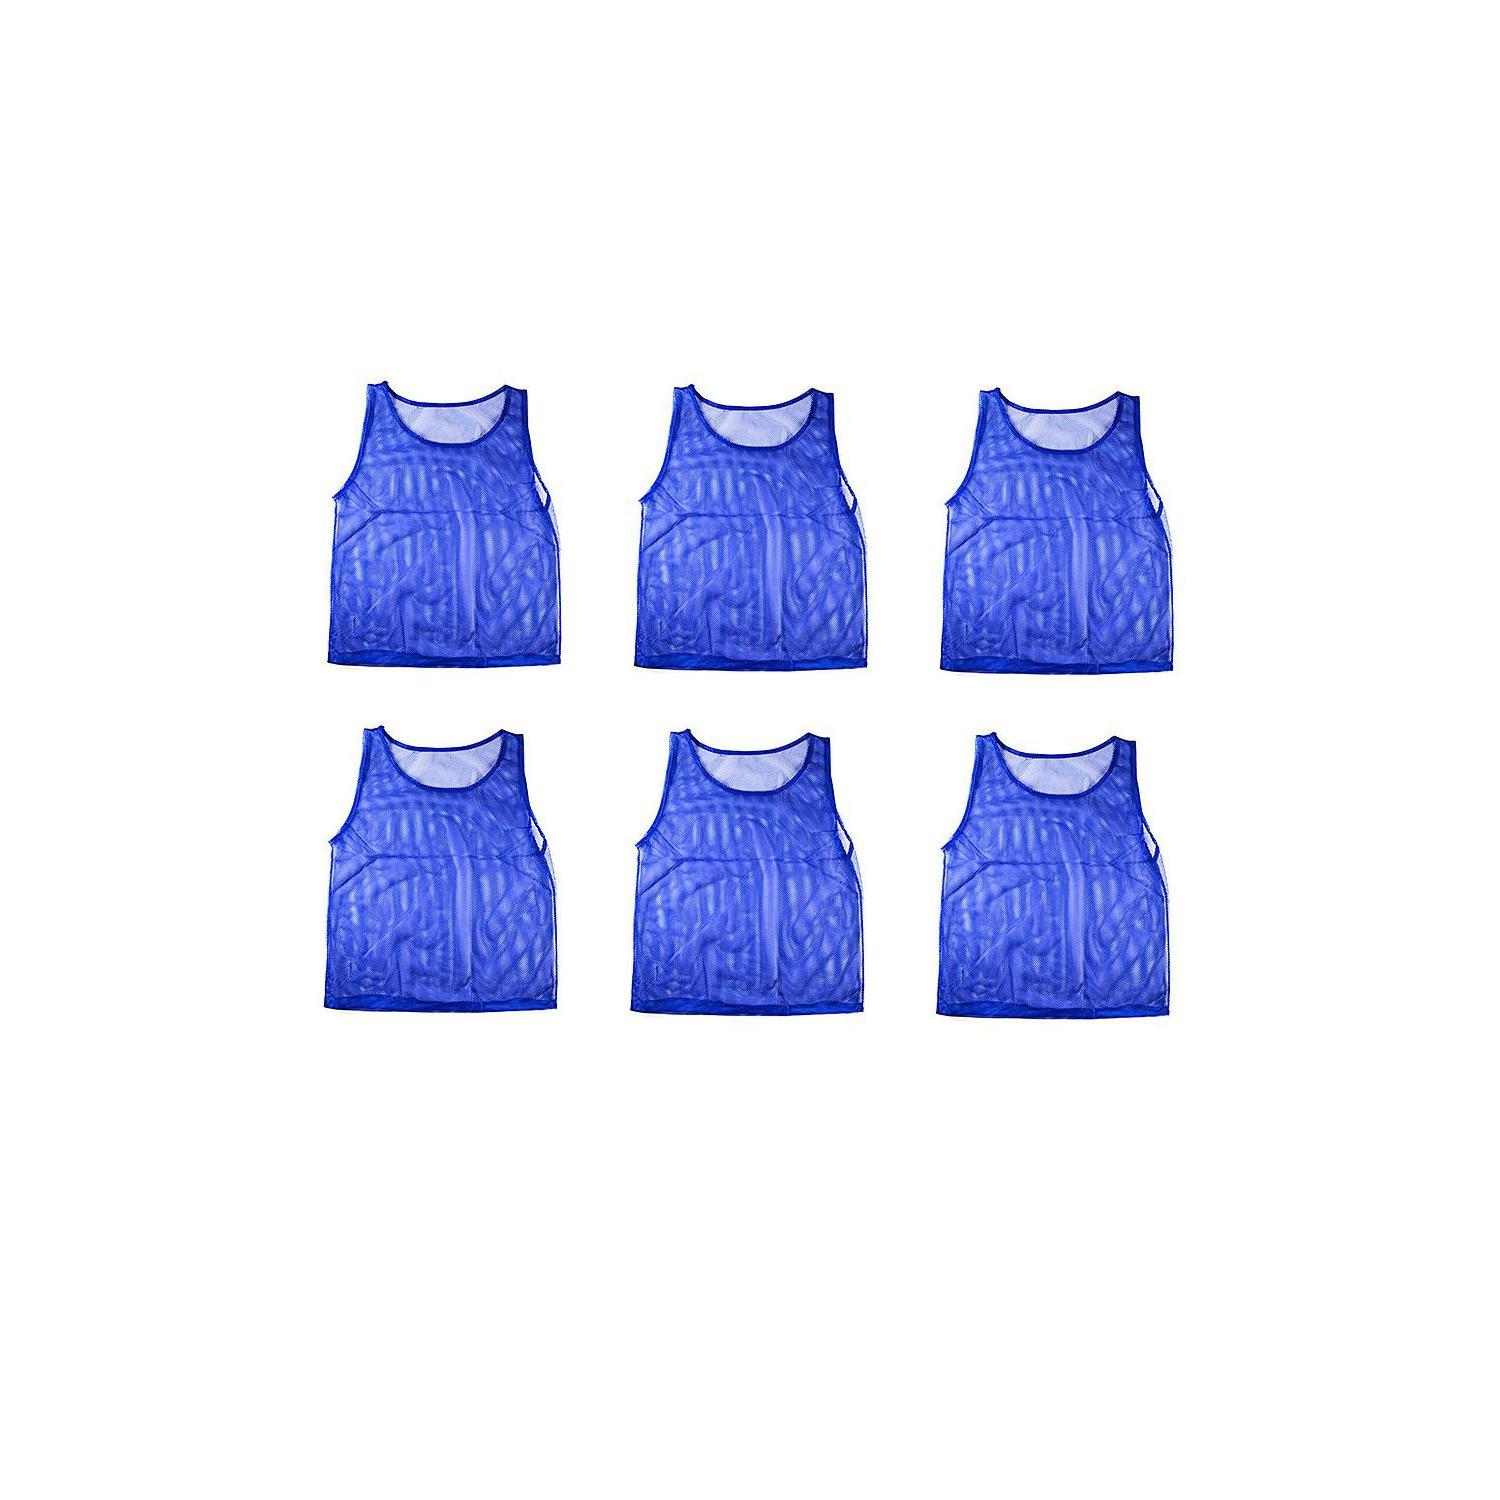 6 Blue Youth Scrimmage Practice Jerseys Team Pinnies Sports